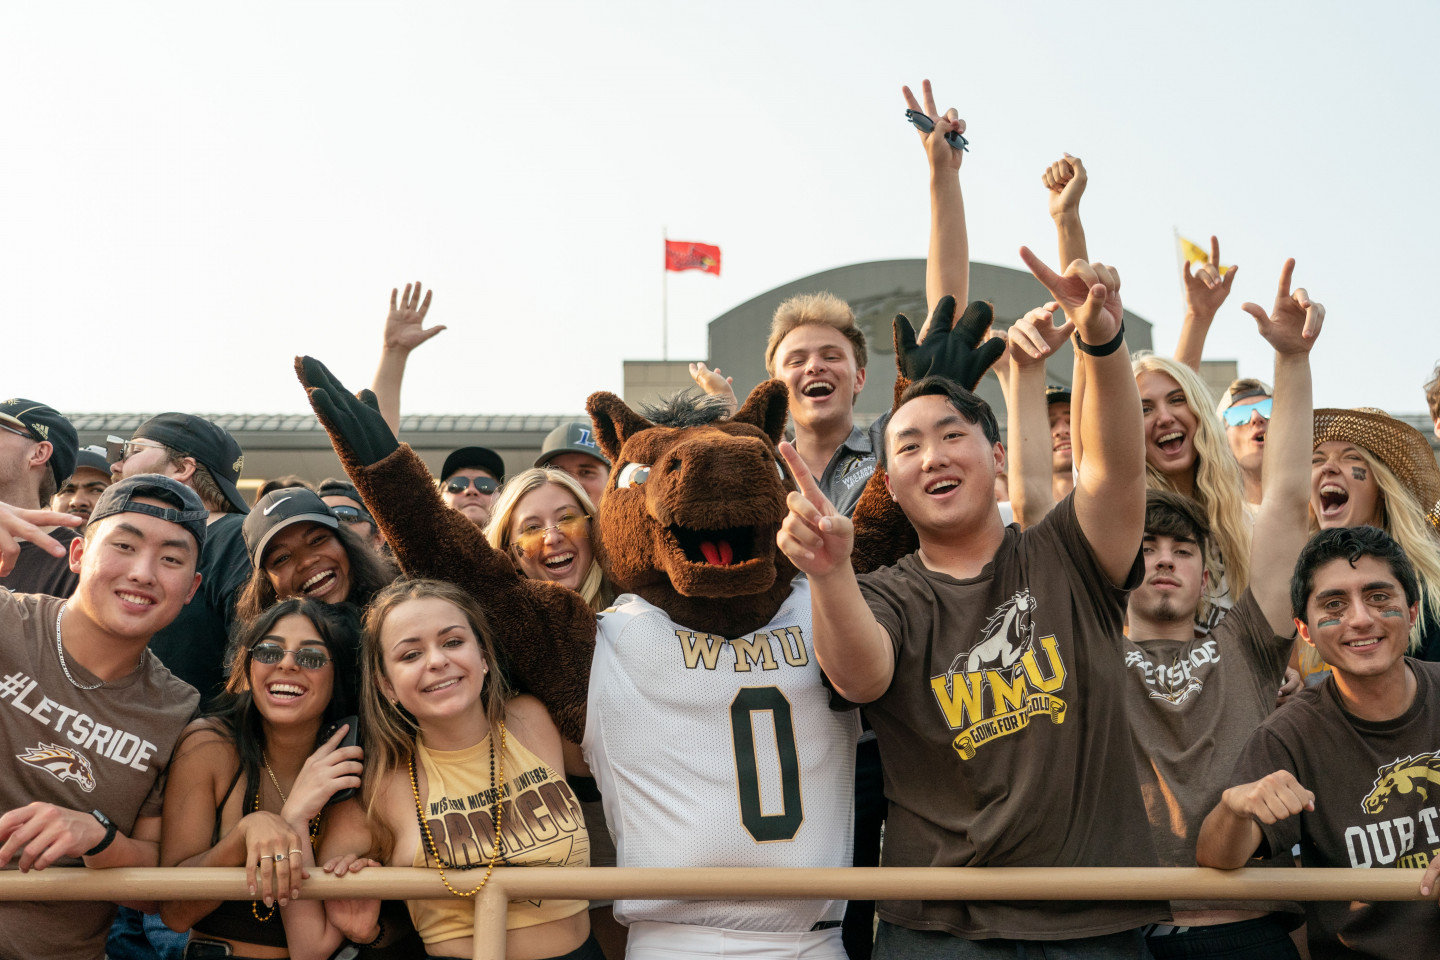 Bronco fans cheer at a WMU football game.